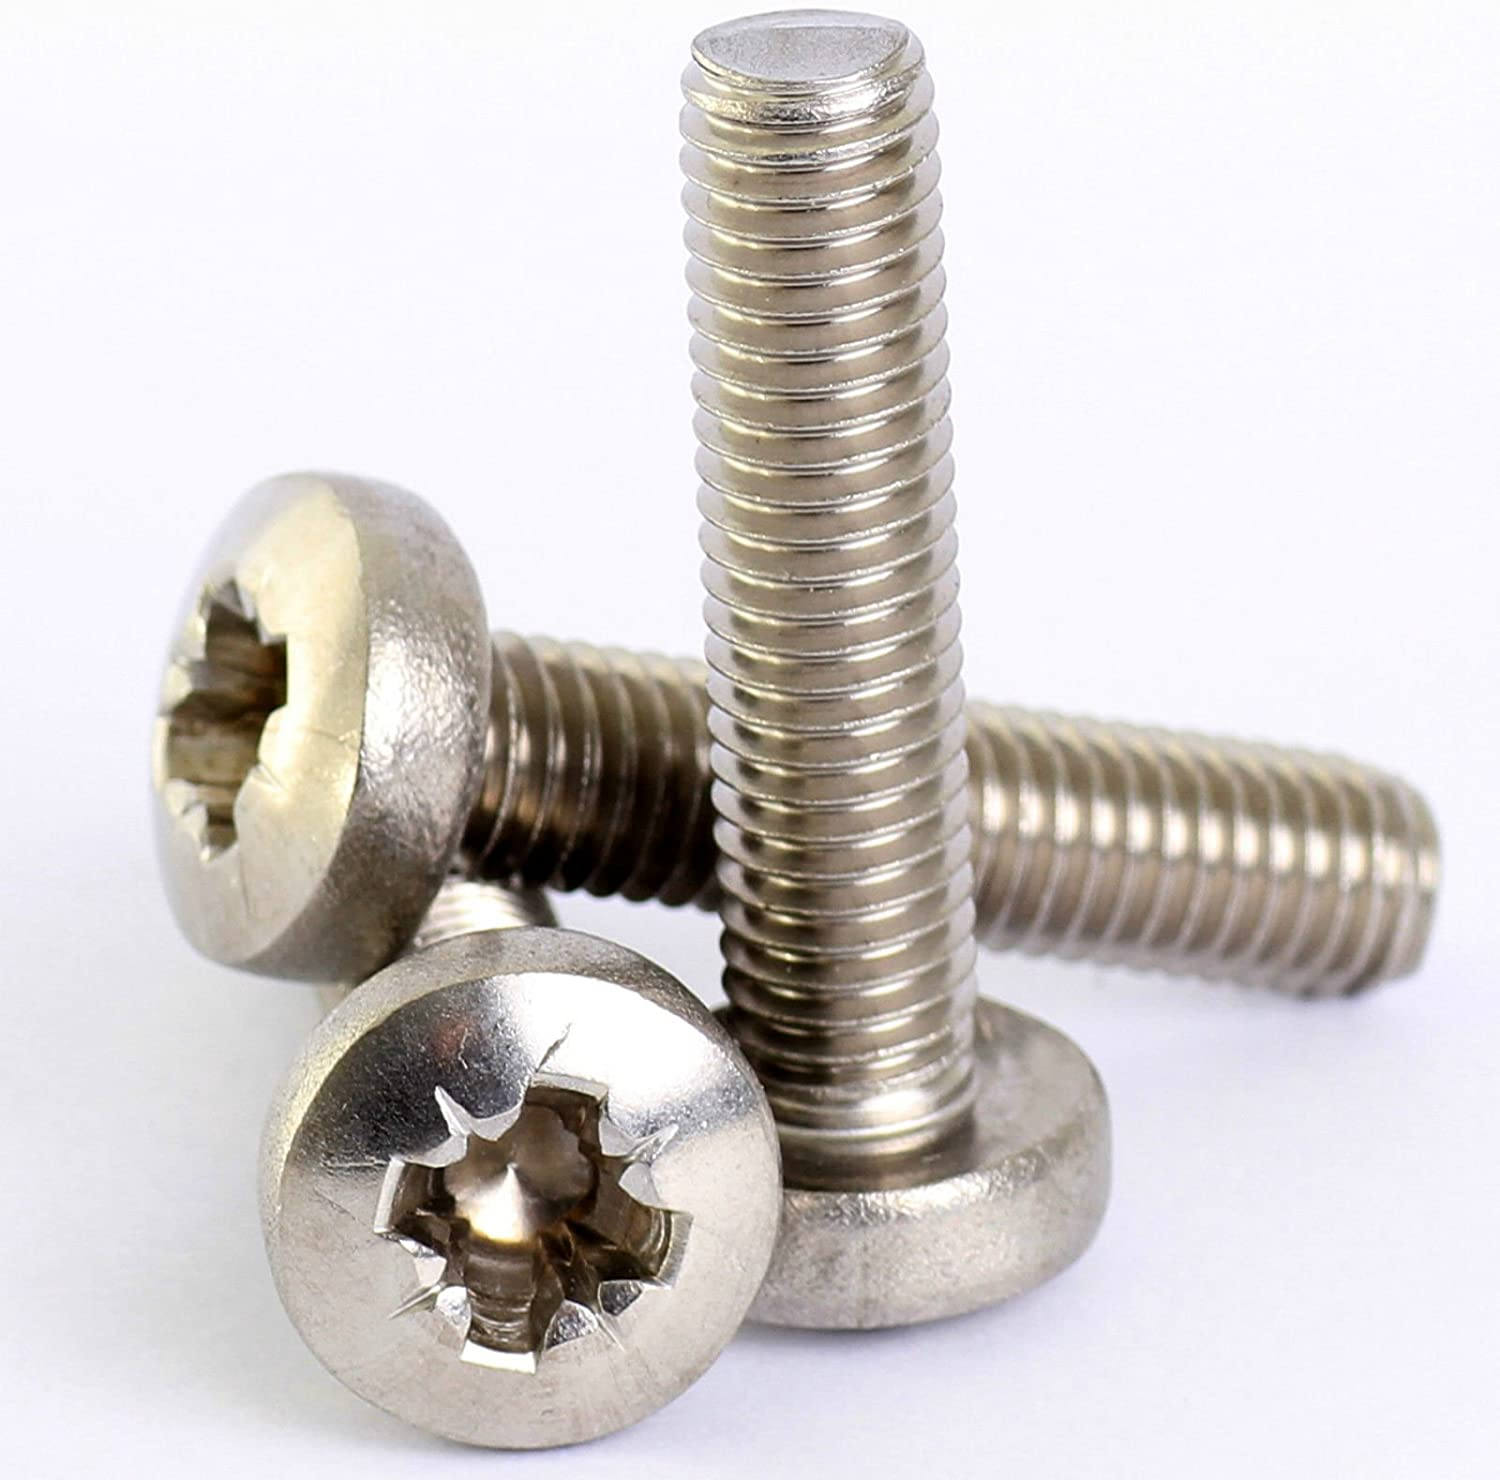 QTY:100 M2X4 7985-A2 PHILLIPS PAN HEAD STAINLESS STEEL MACHINE SCREWS